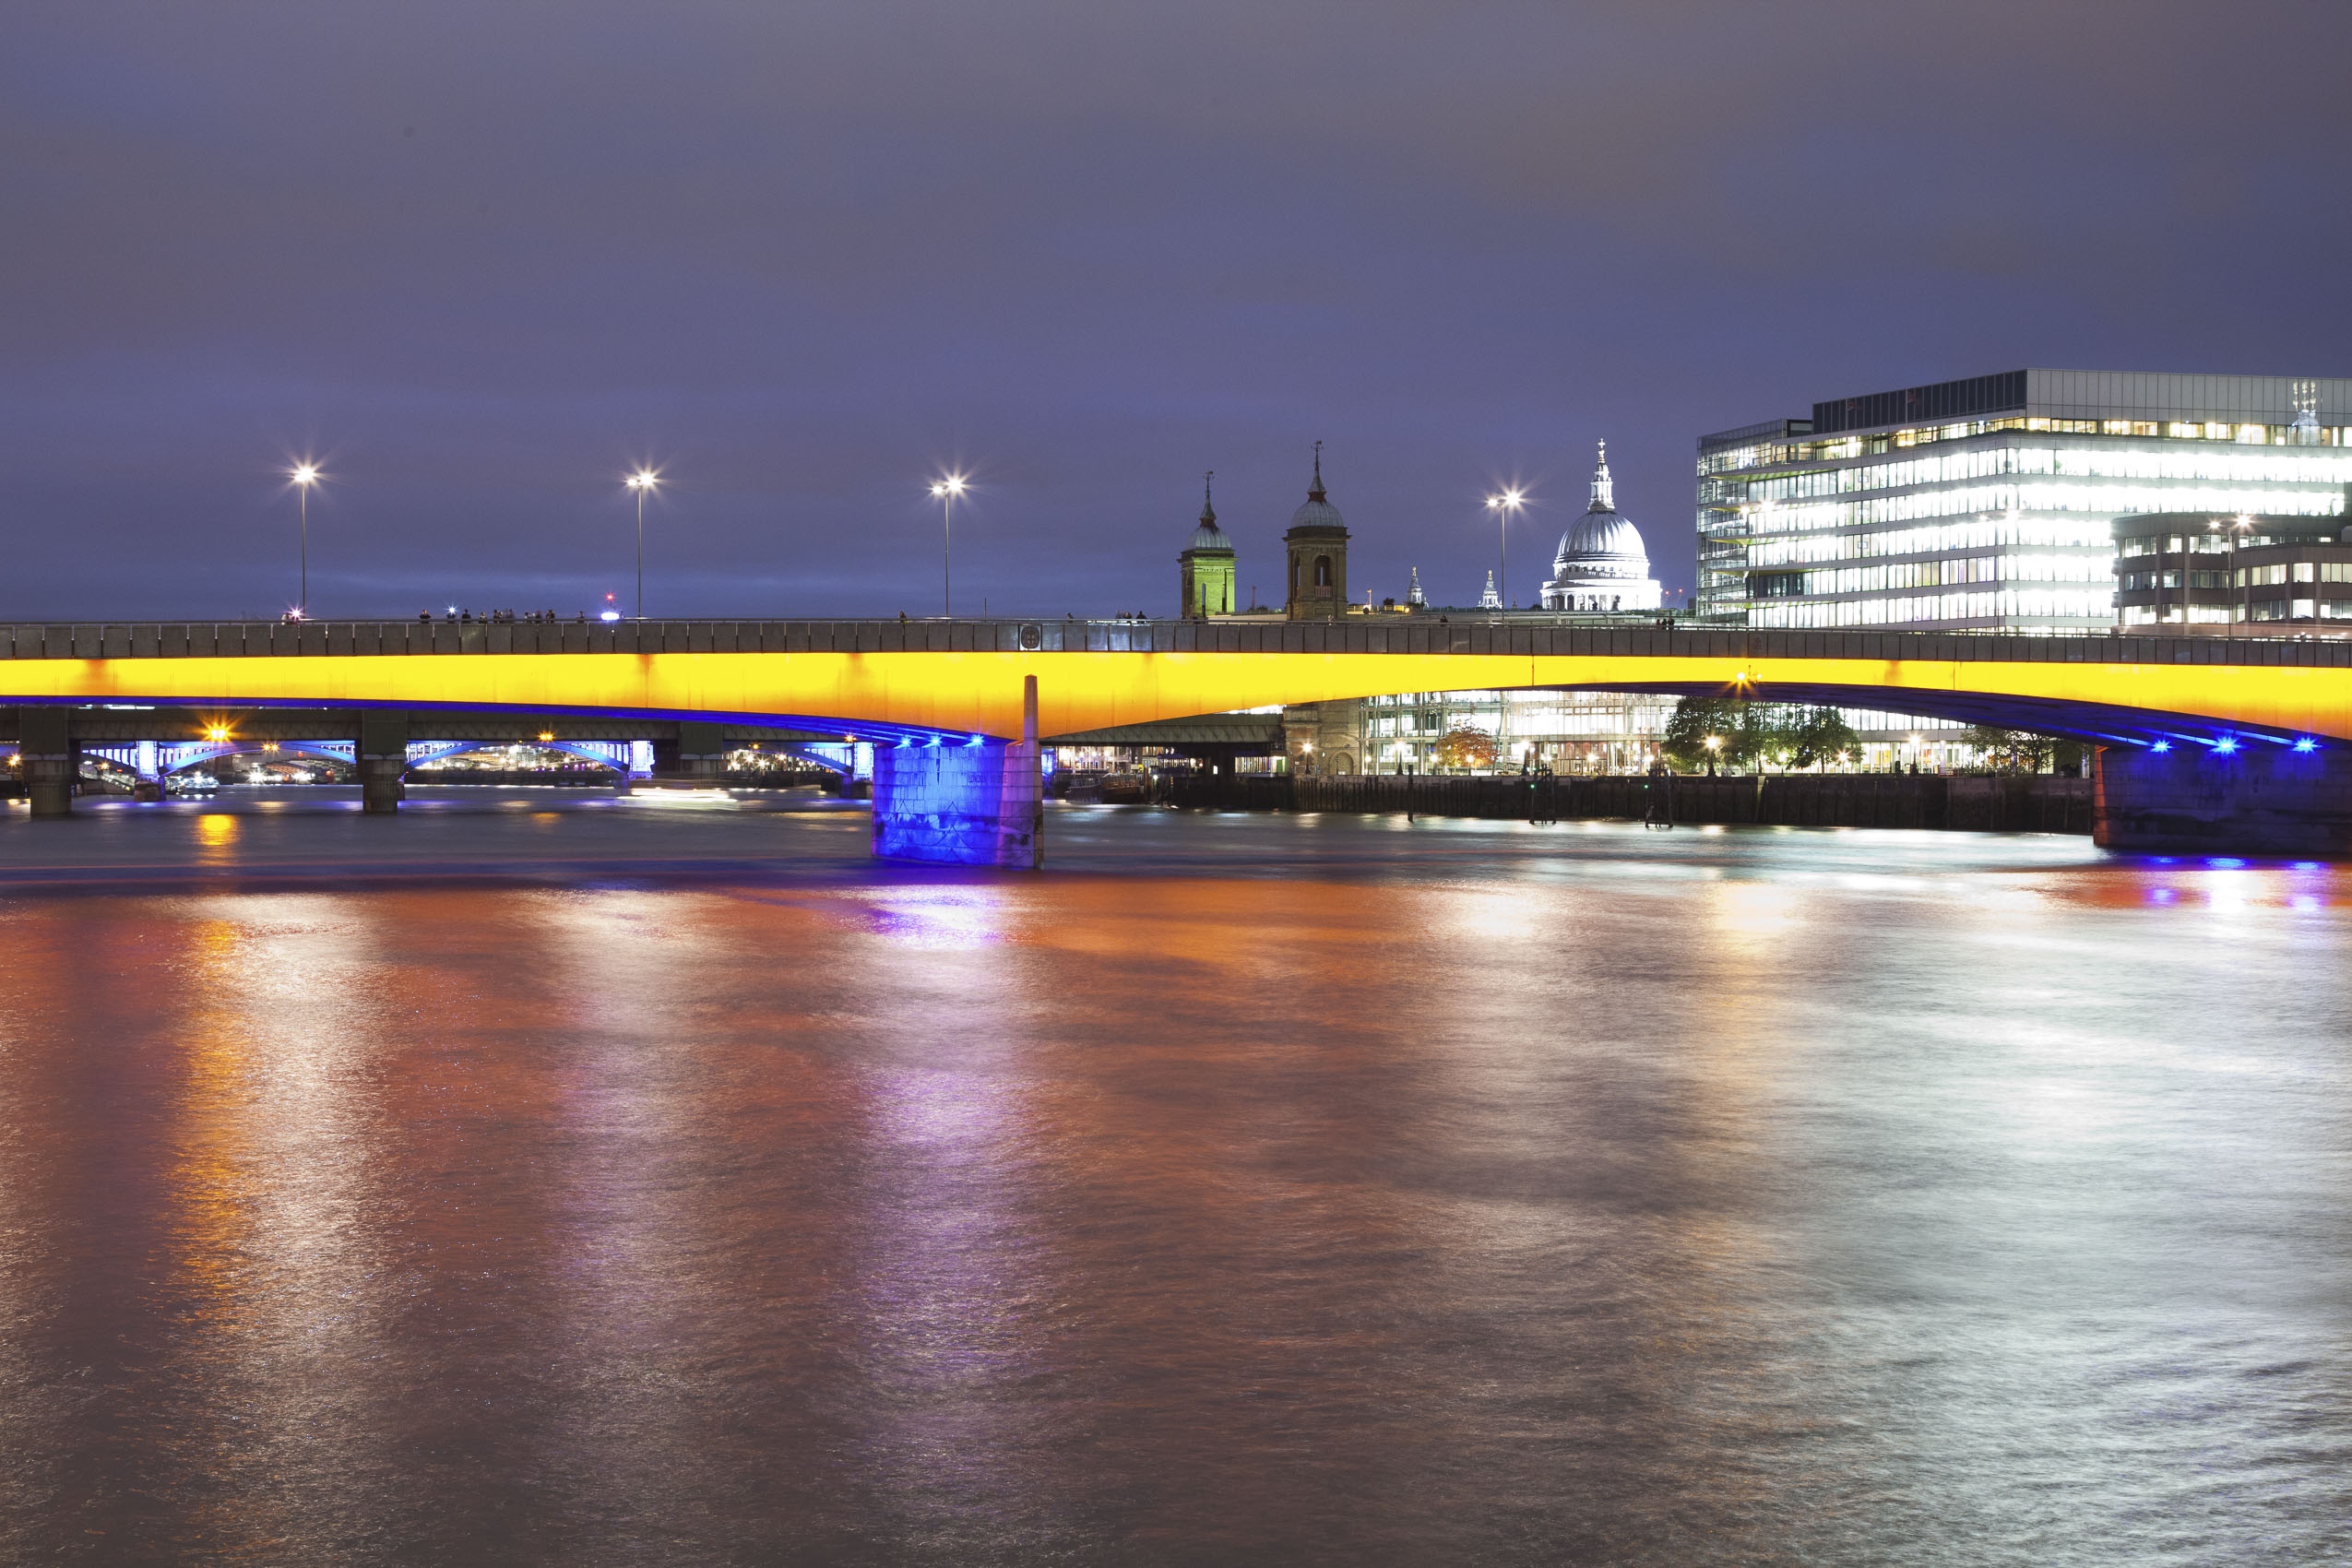 london_london_bridge_thames_night.jpg